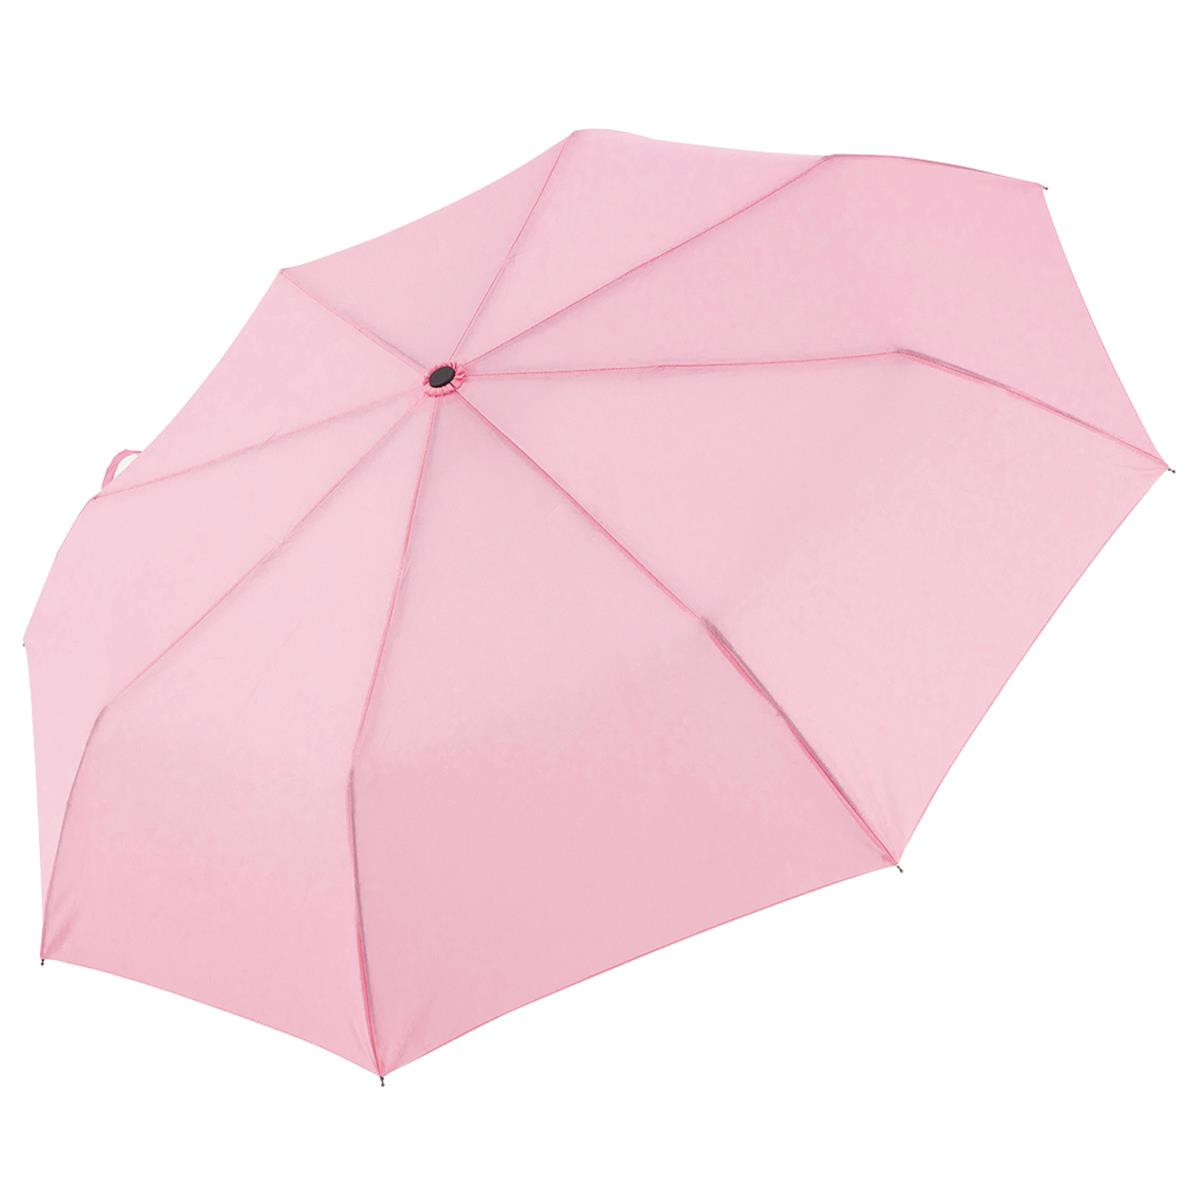 2115 Umbra - Boutique Compact Umbrella / Auto Open